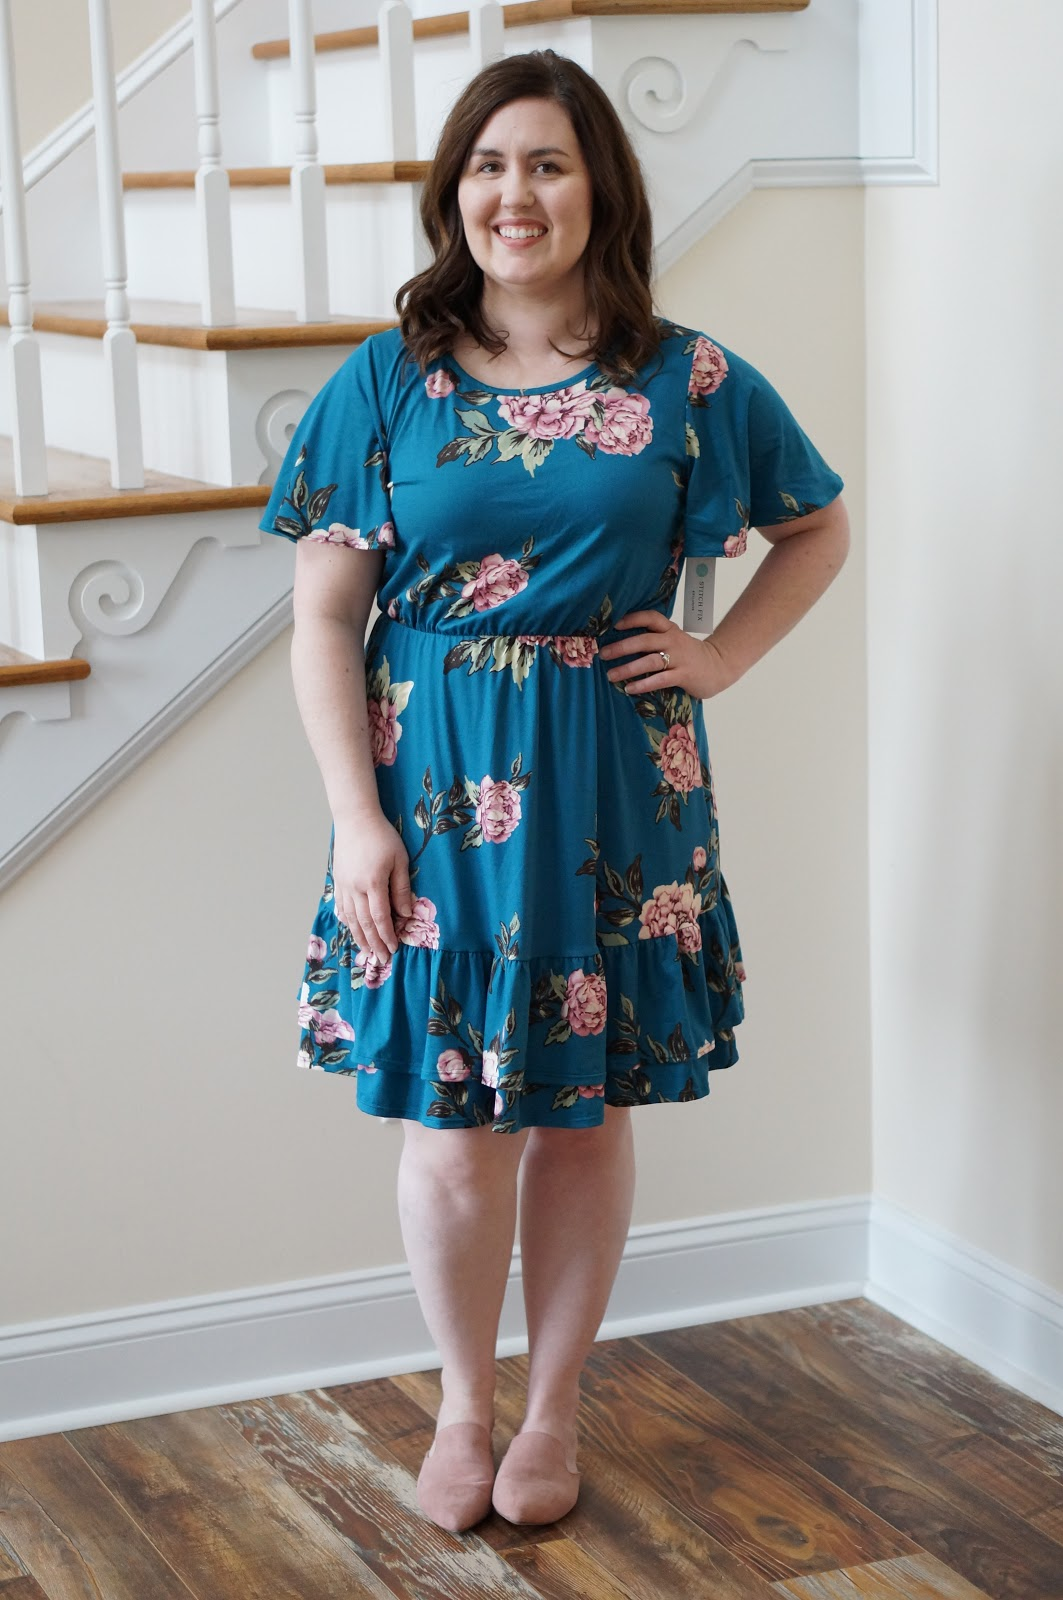 STITCH FIX REVIEW | MARCH 2018 OUTFITS by popular North Carolina style blogger Rebecca Lately